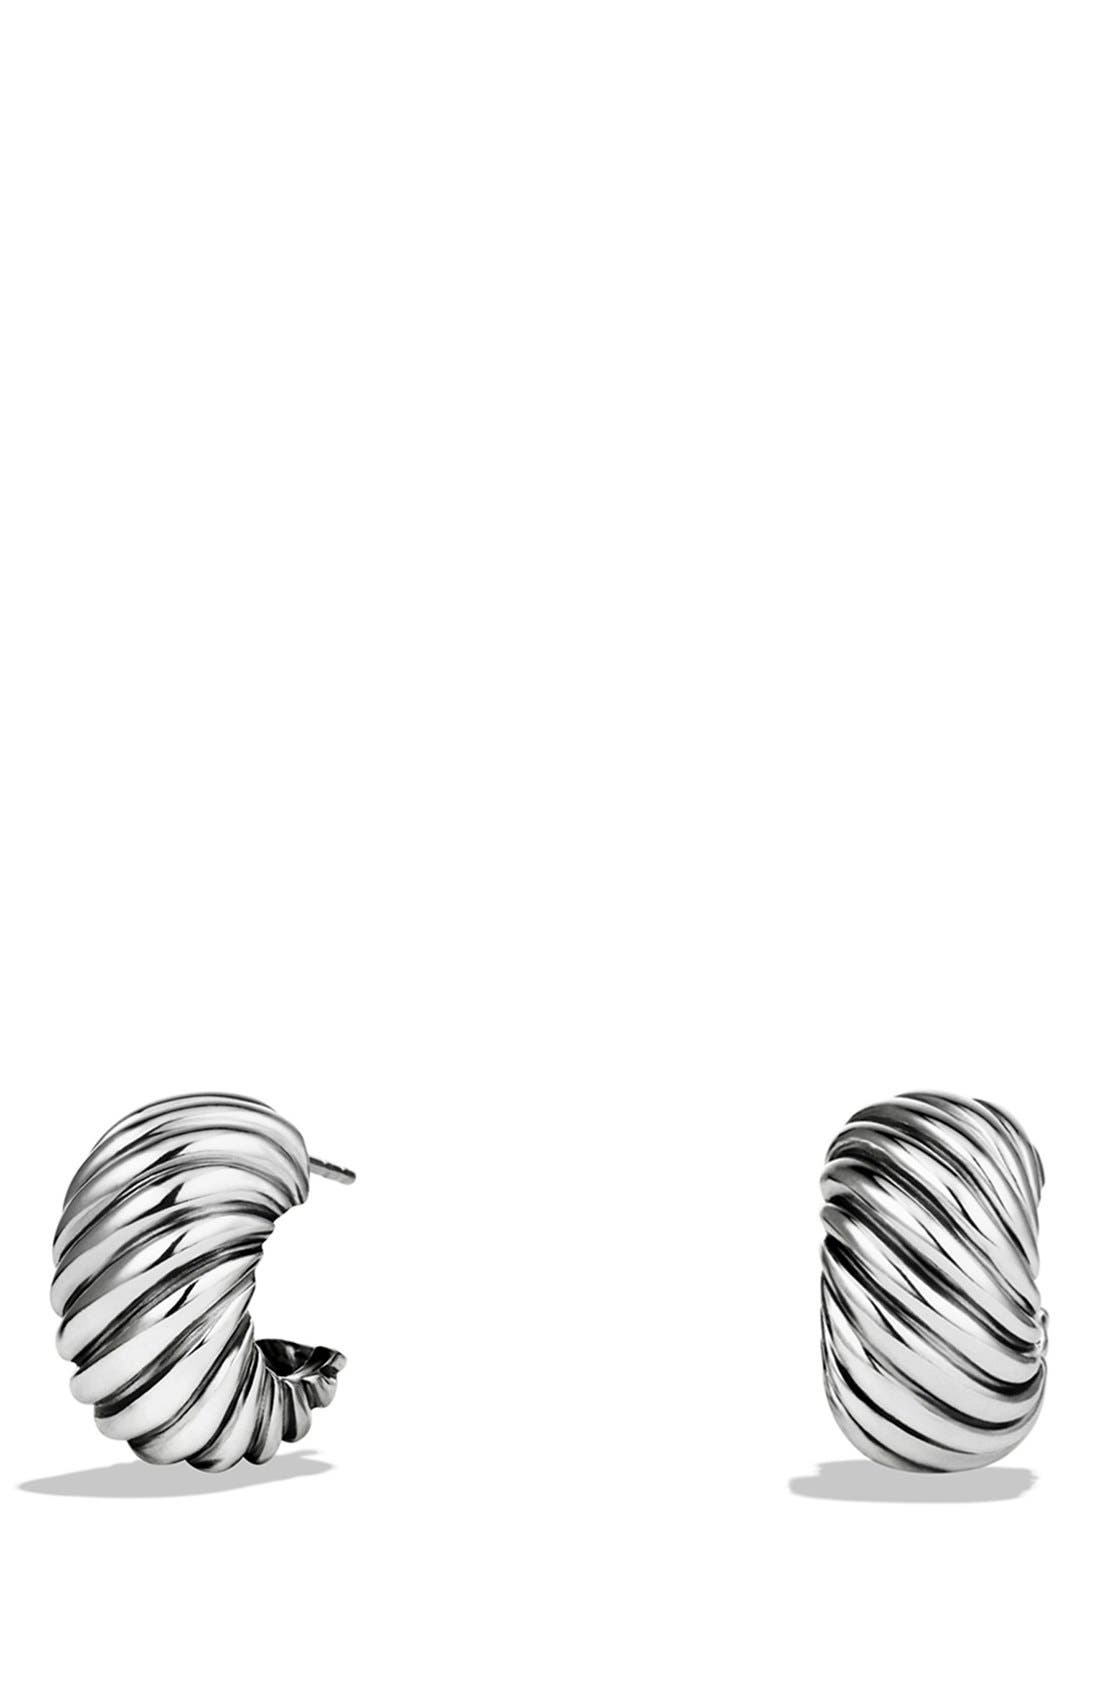 'Cable Classics' Hoop Earrings,                         Main,                         color, Silver